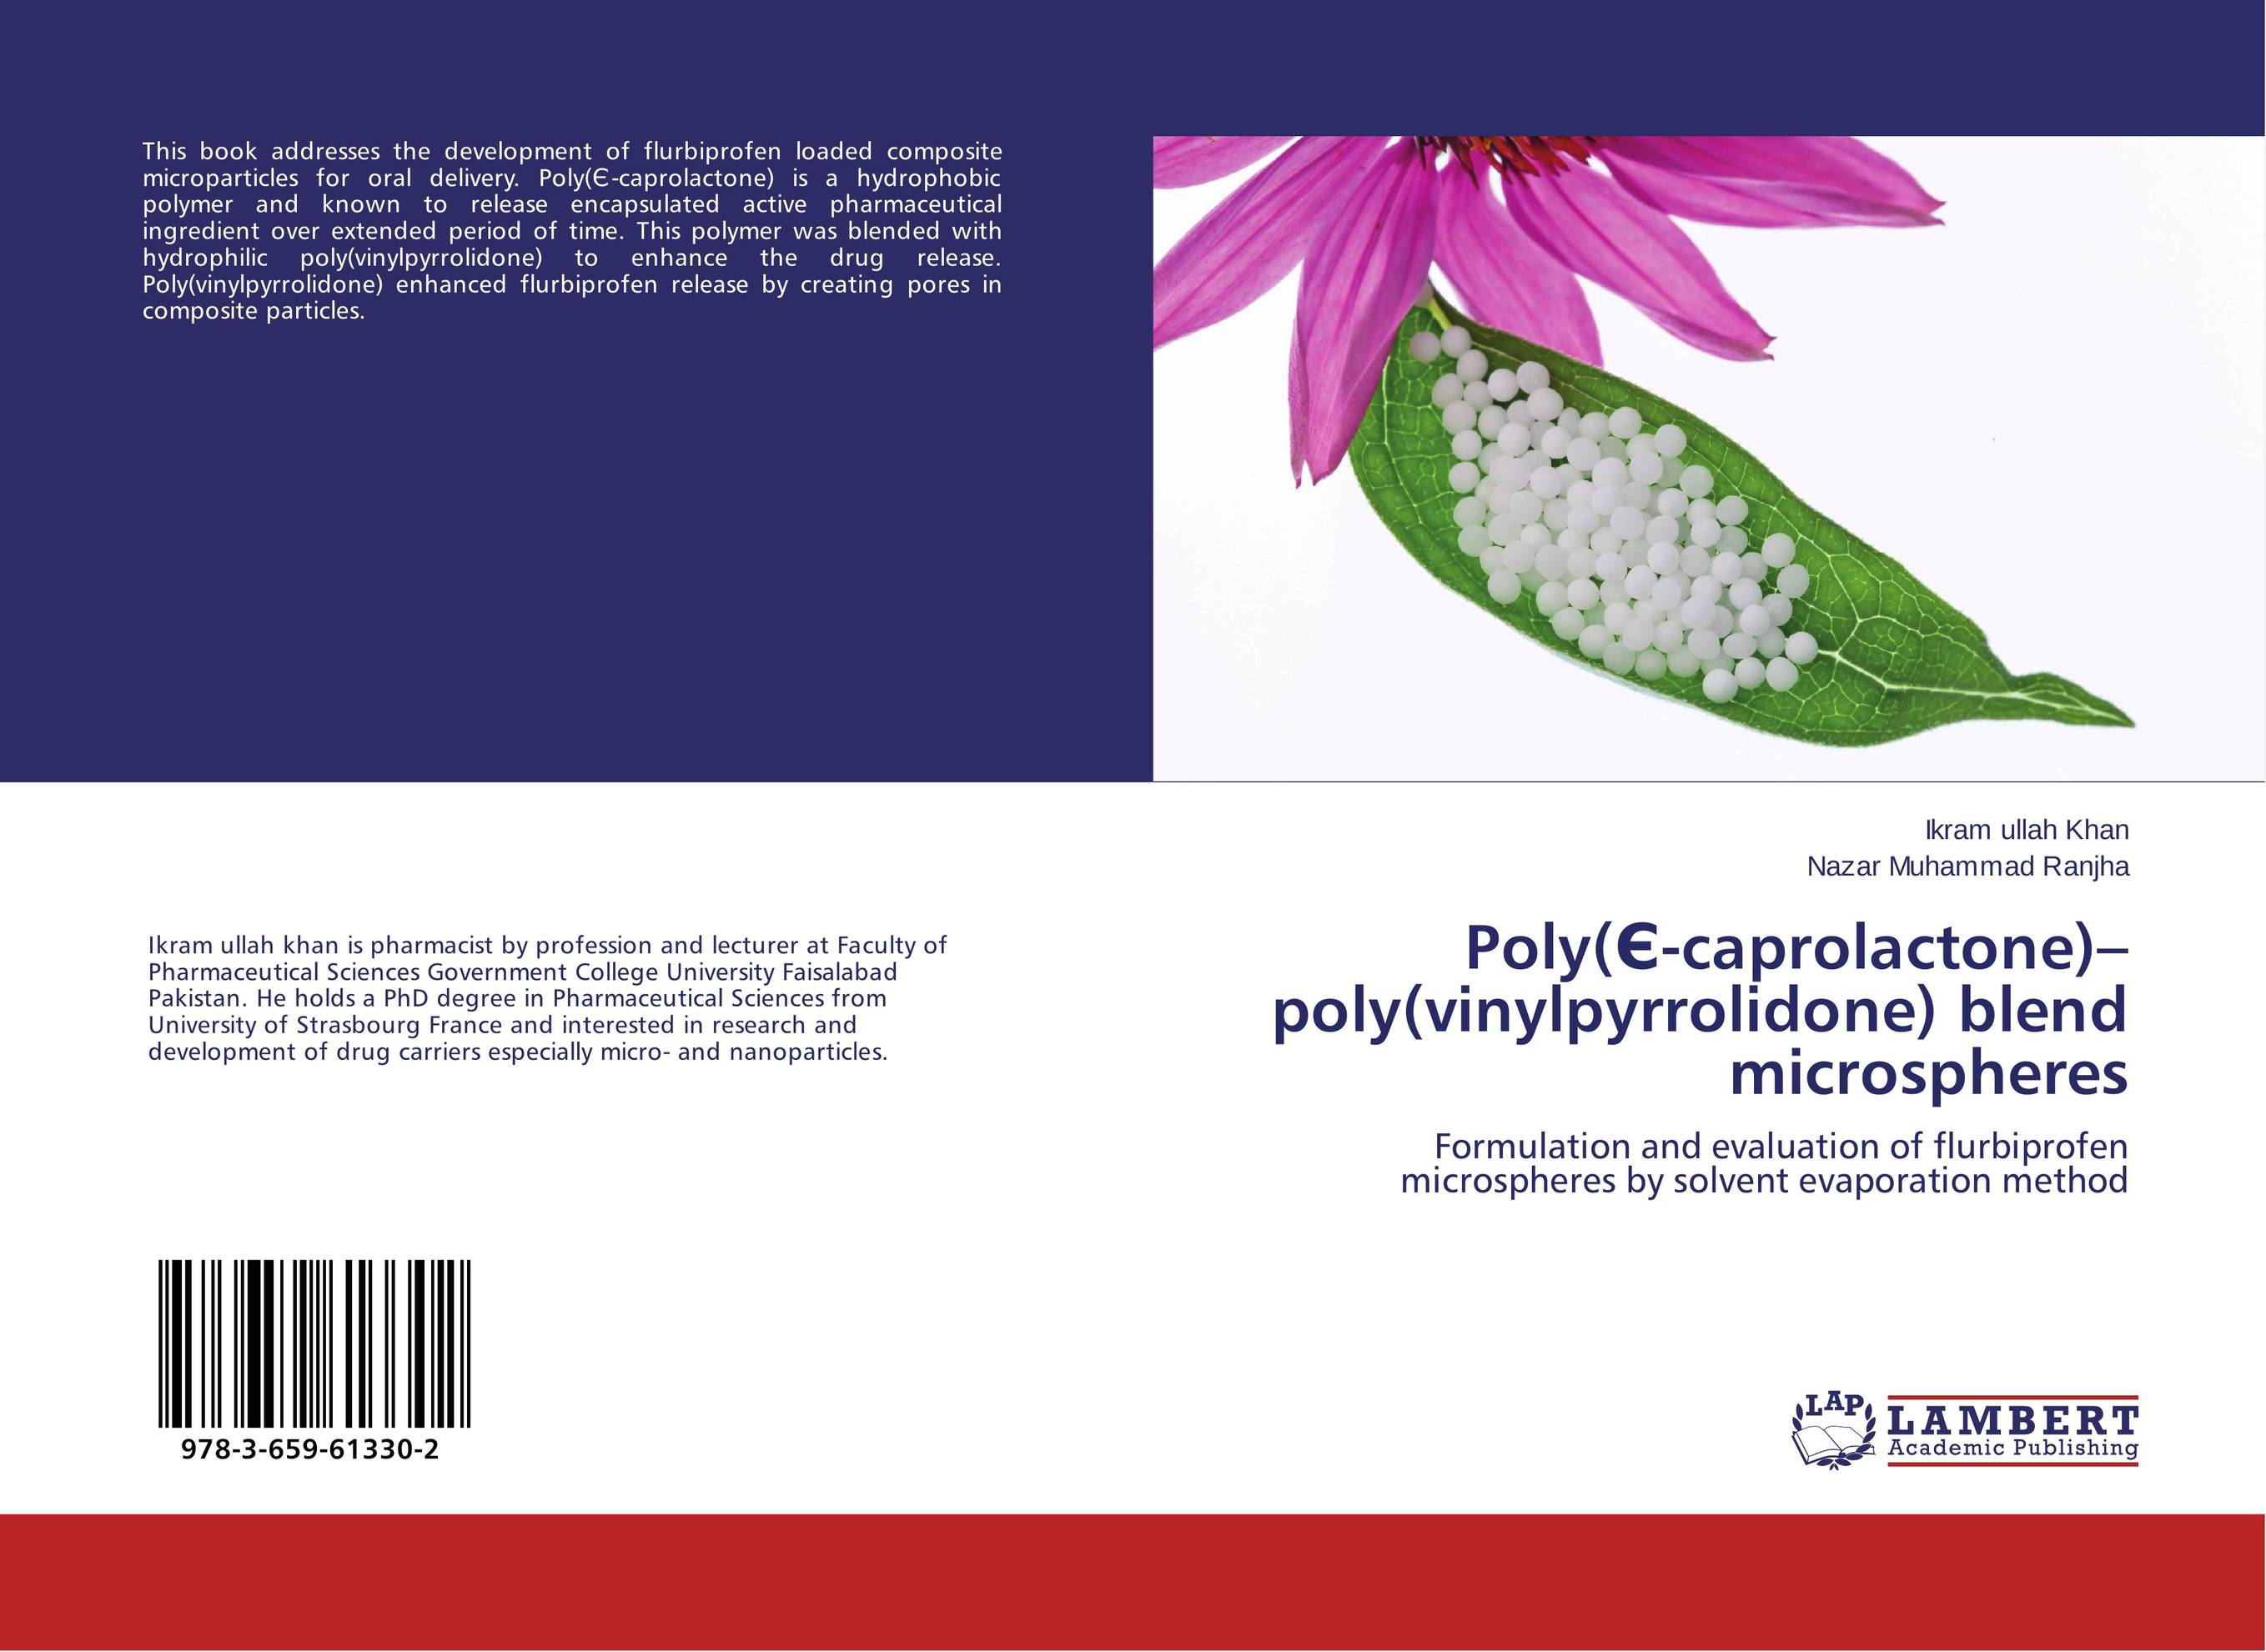 Poly(Є-caprolactone)–poly(vinylpyrrolidone) blend microspheres the release